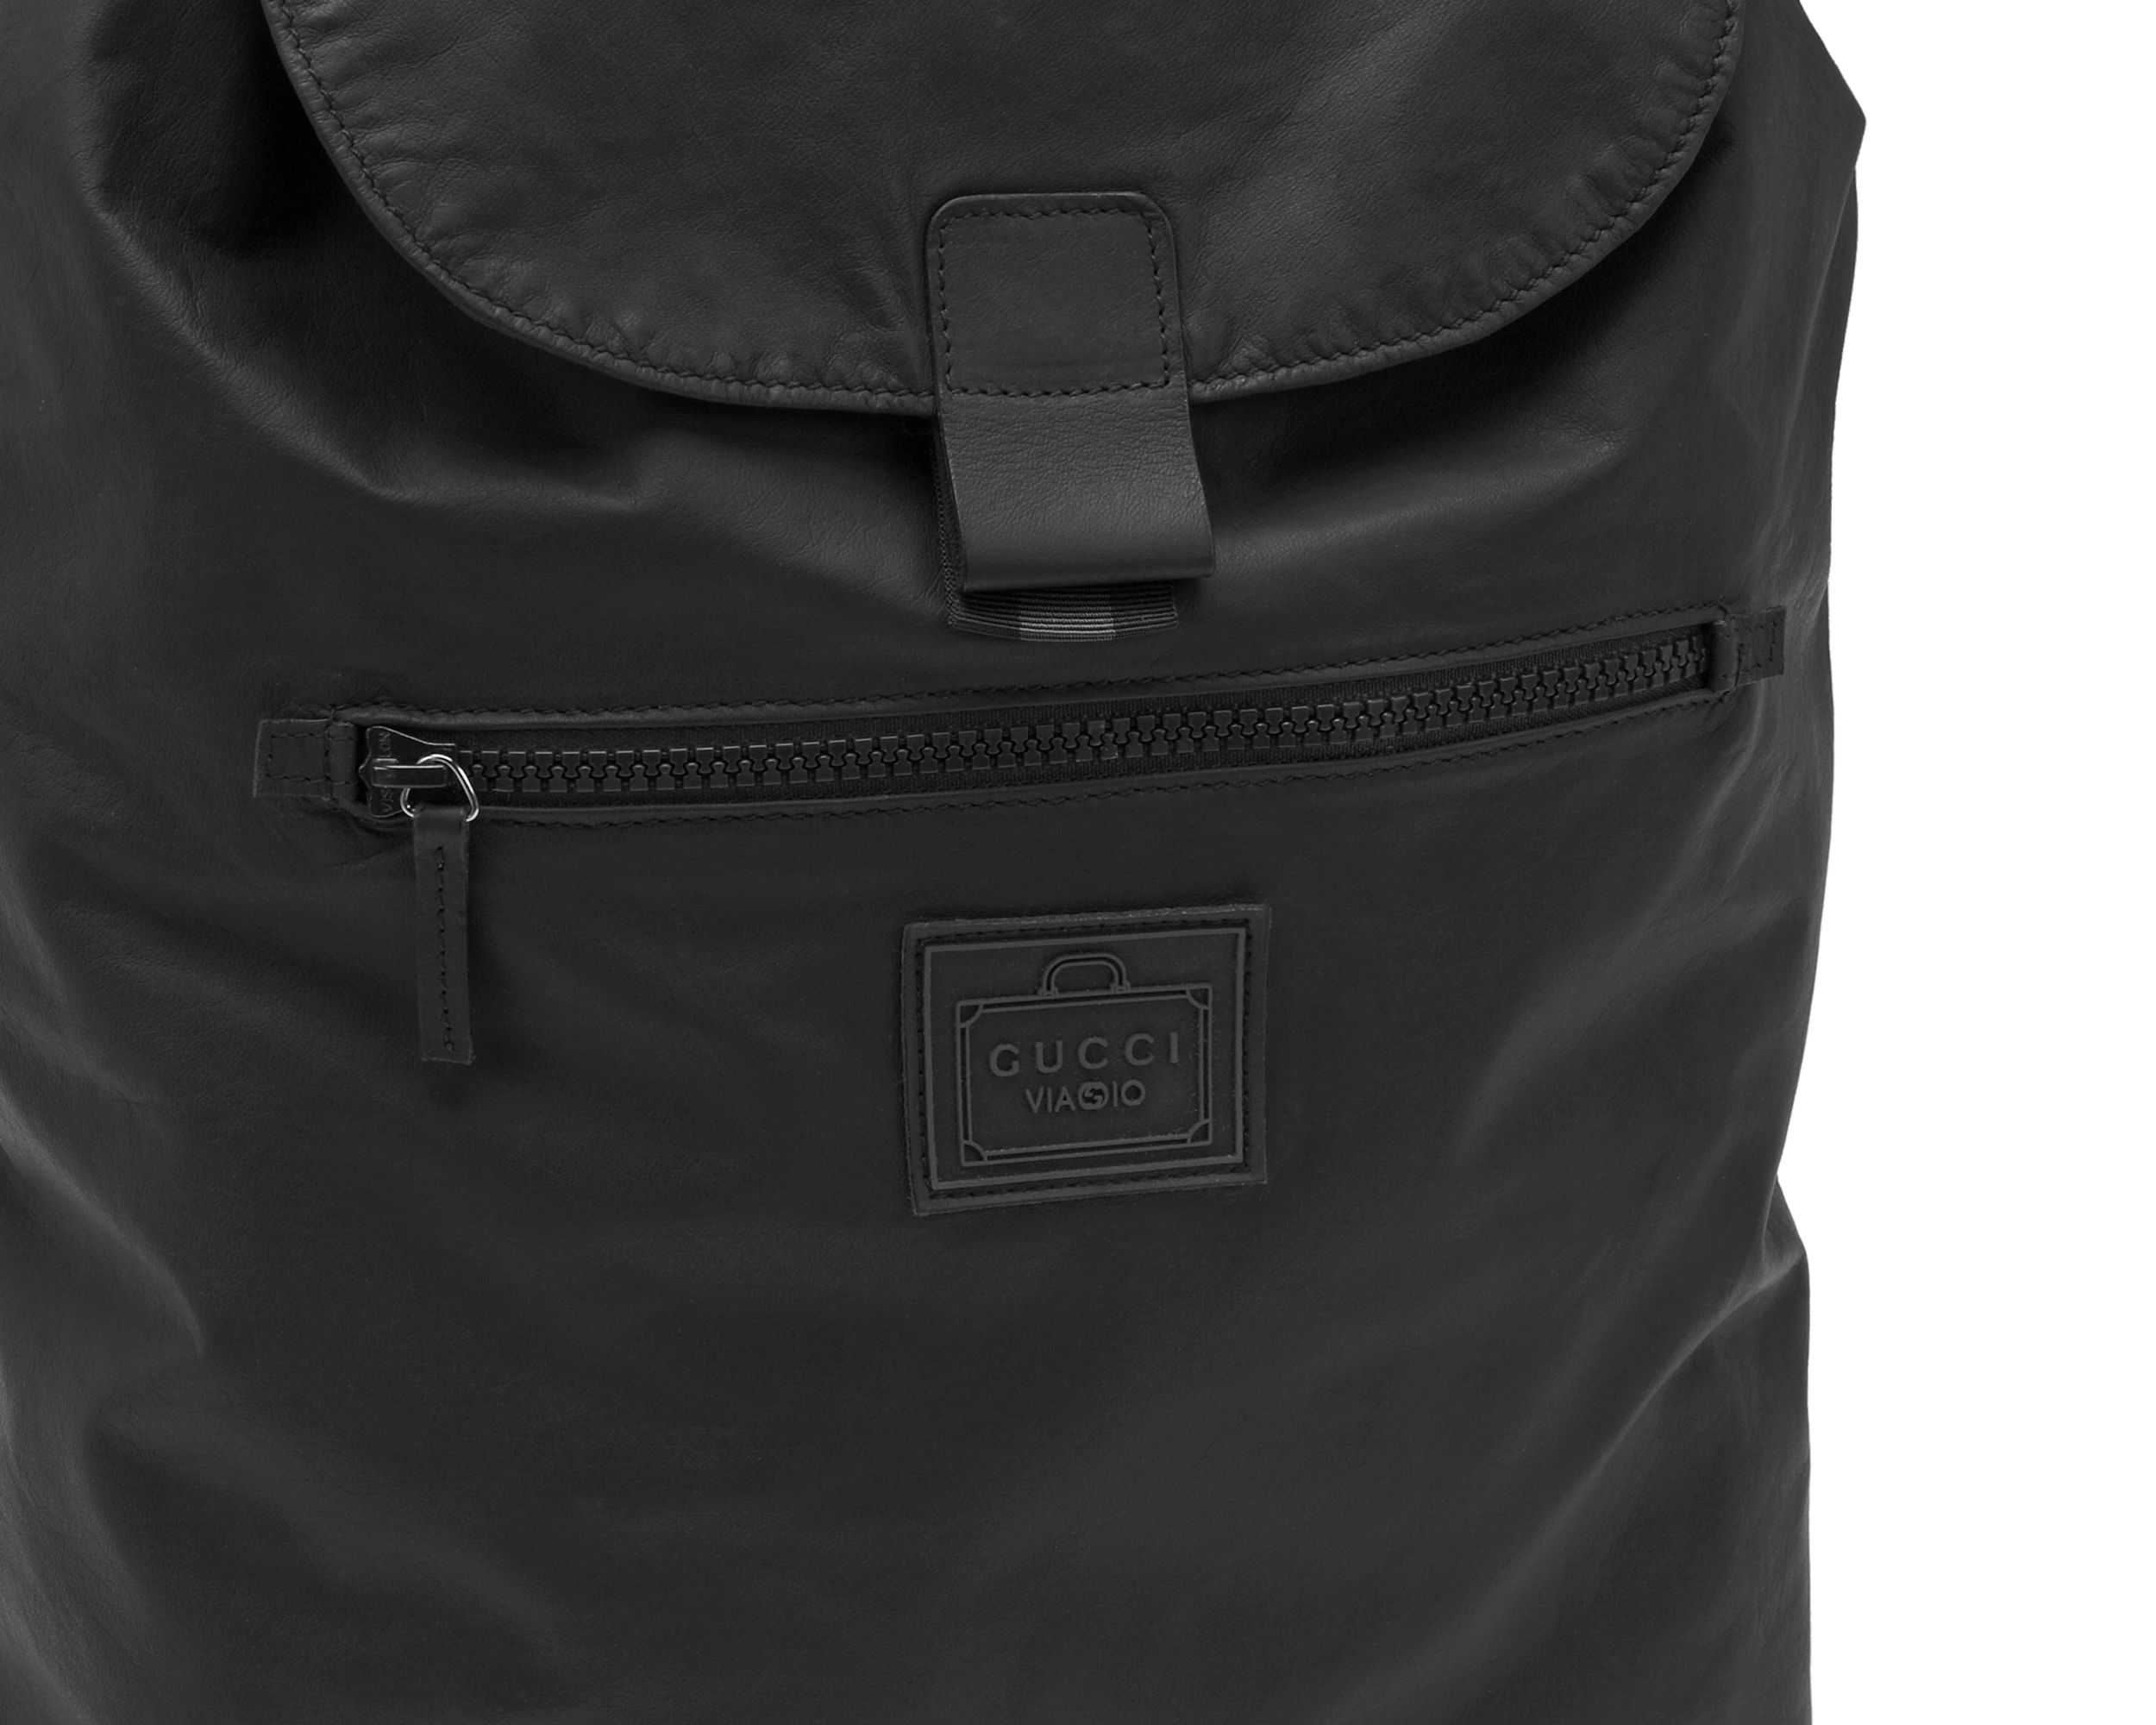 Gucci Viaggio Nylon Backpack  gucciviaggio The perfect backpack to keep all  my stuff and my hands free during my visits 91691226dc5ac